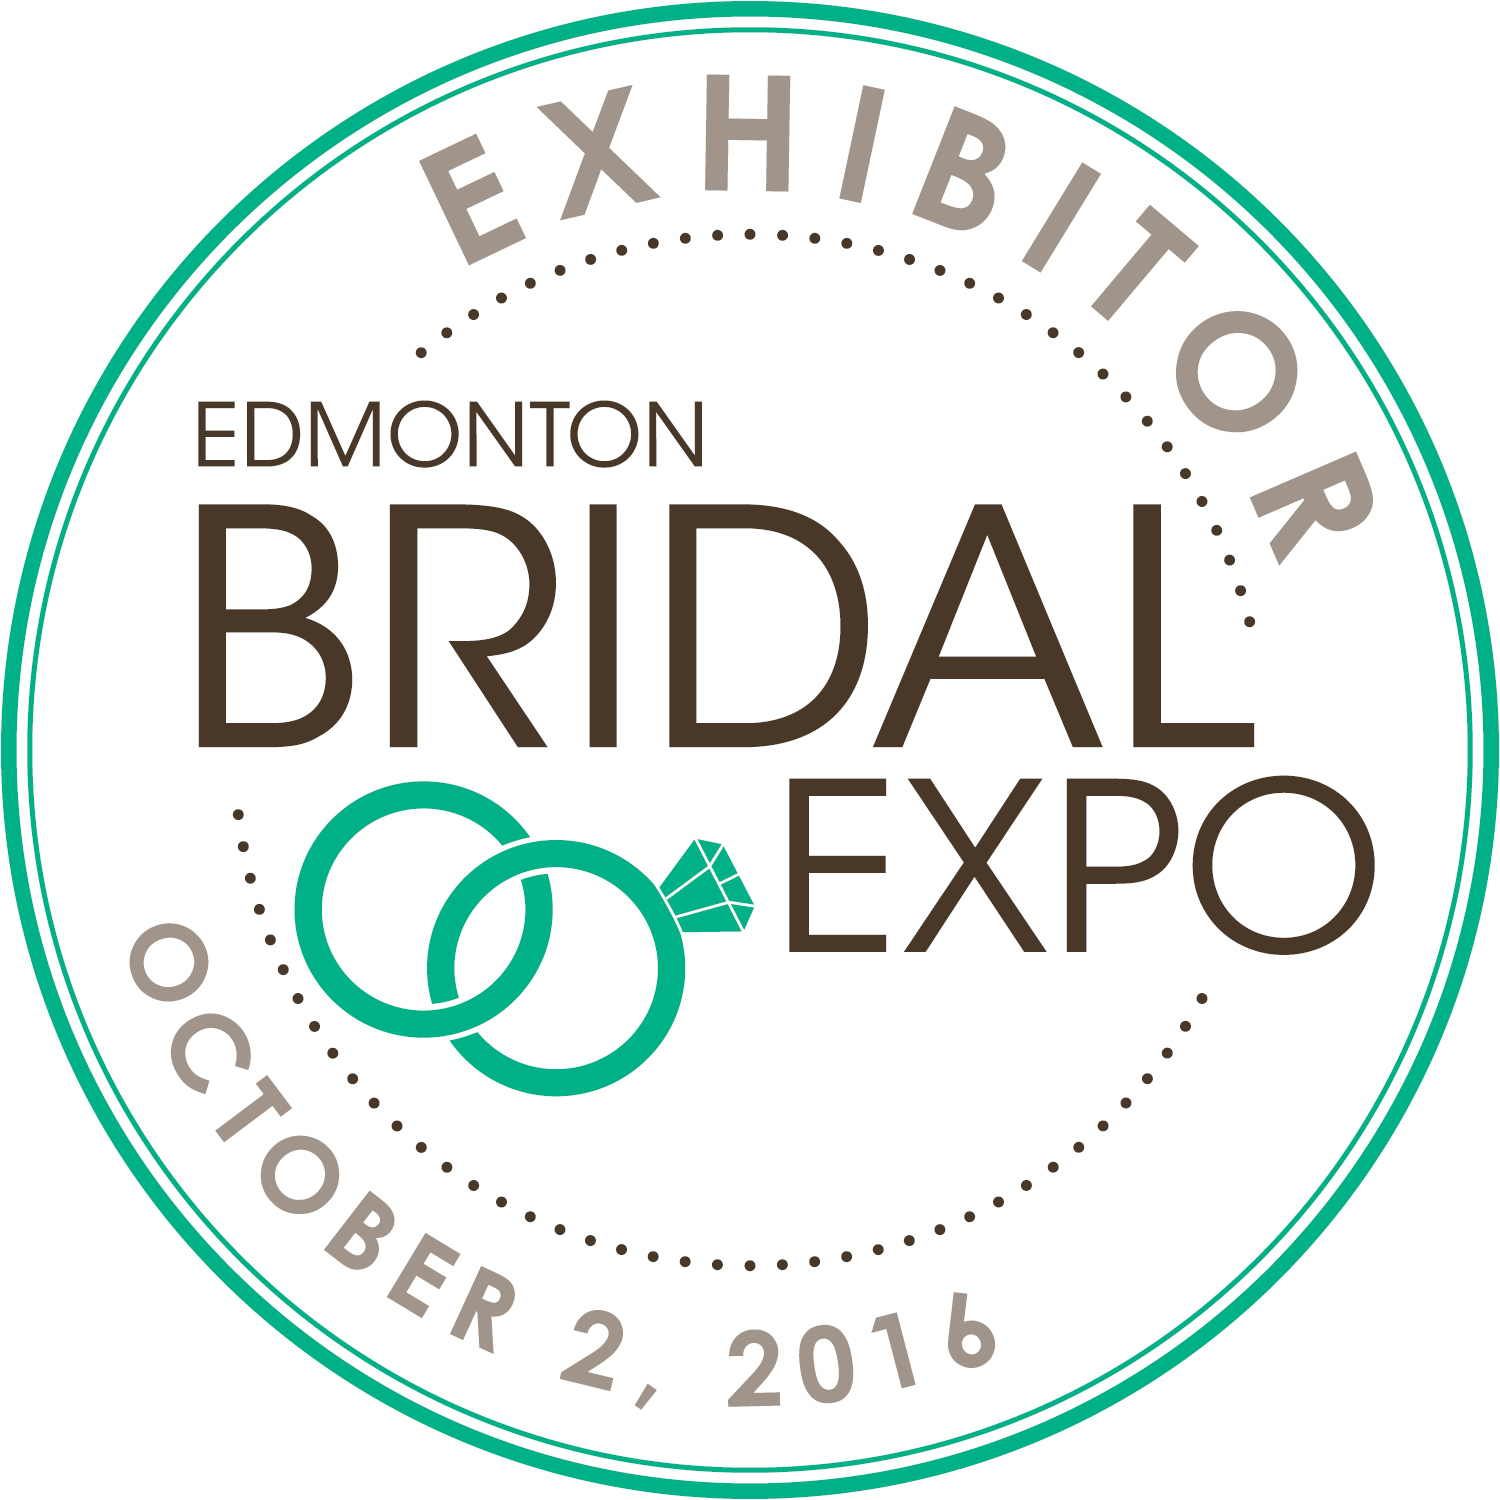 Bridal Expo Exhibitor Badge